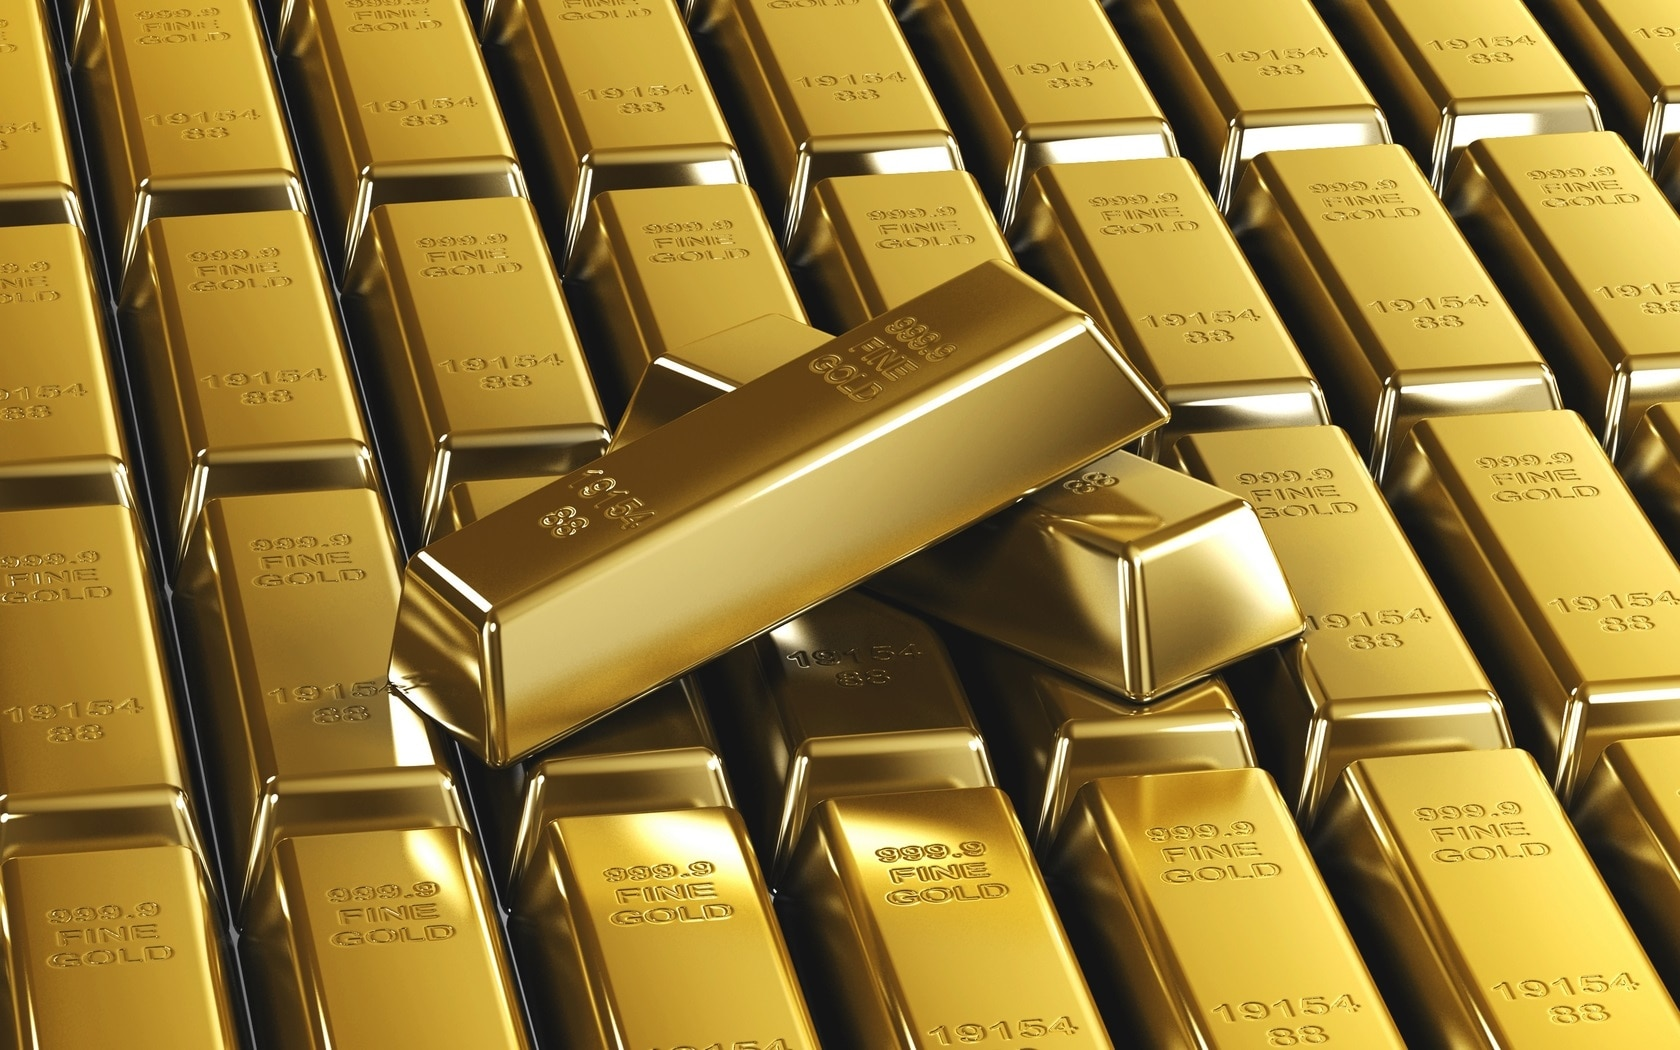 Gold Bar Buyer Consultants in India  We provide Best Consultation regarding purchasing of Gold Bars. Contact us and get Best Consultation for purchasing Gold Bars.